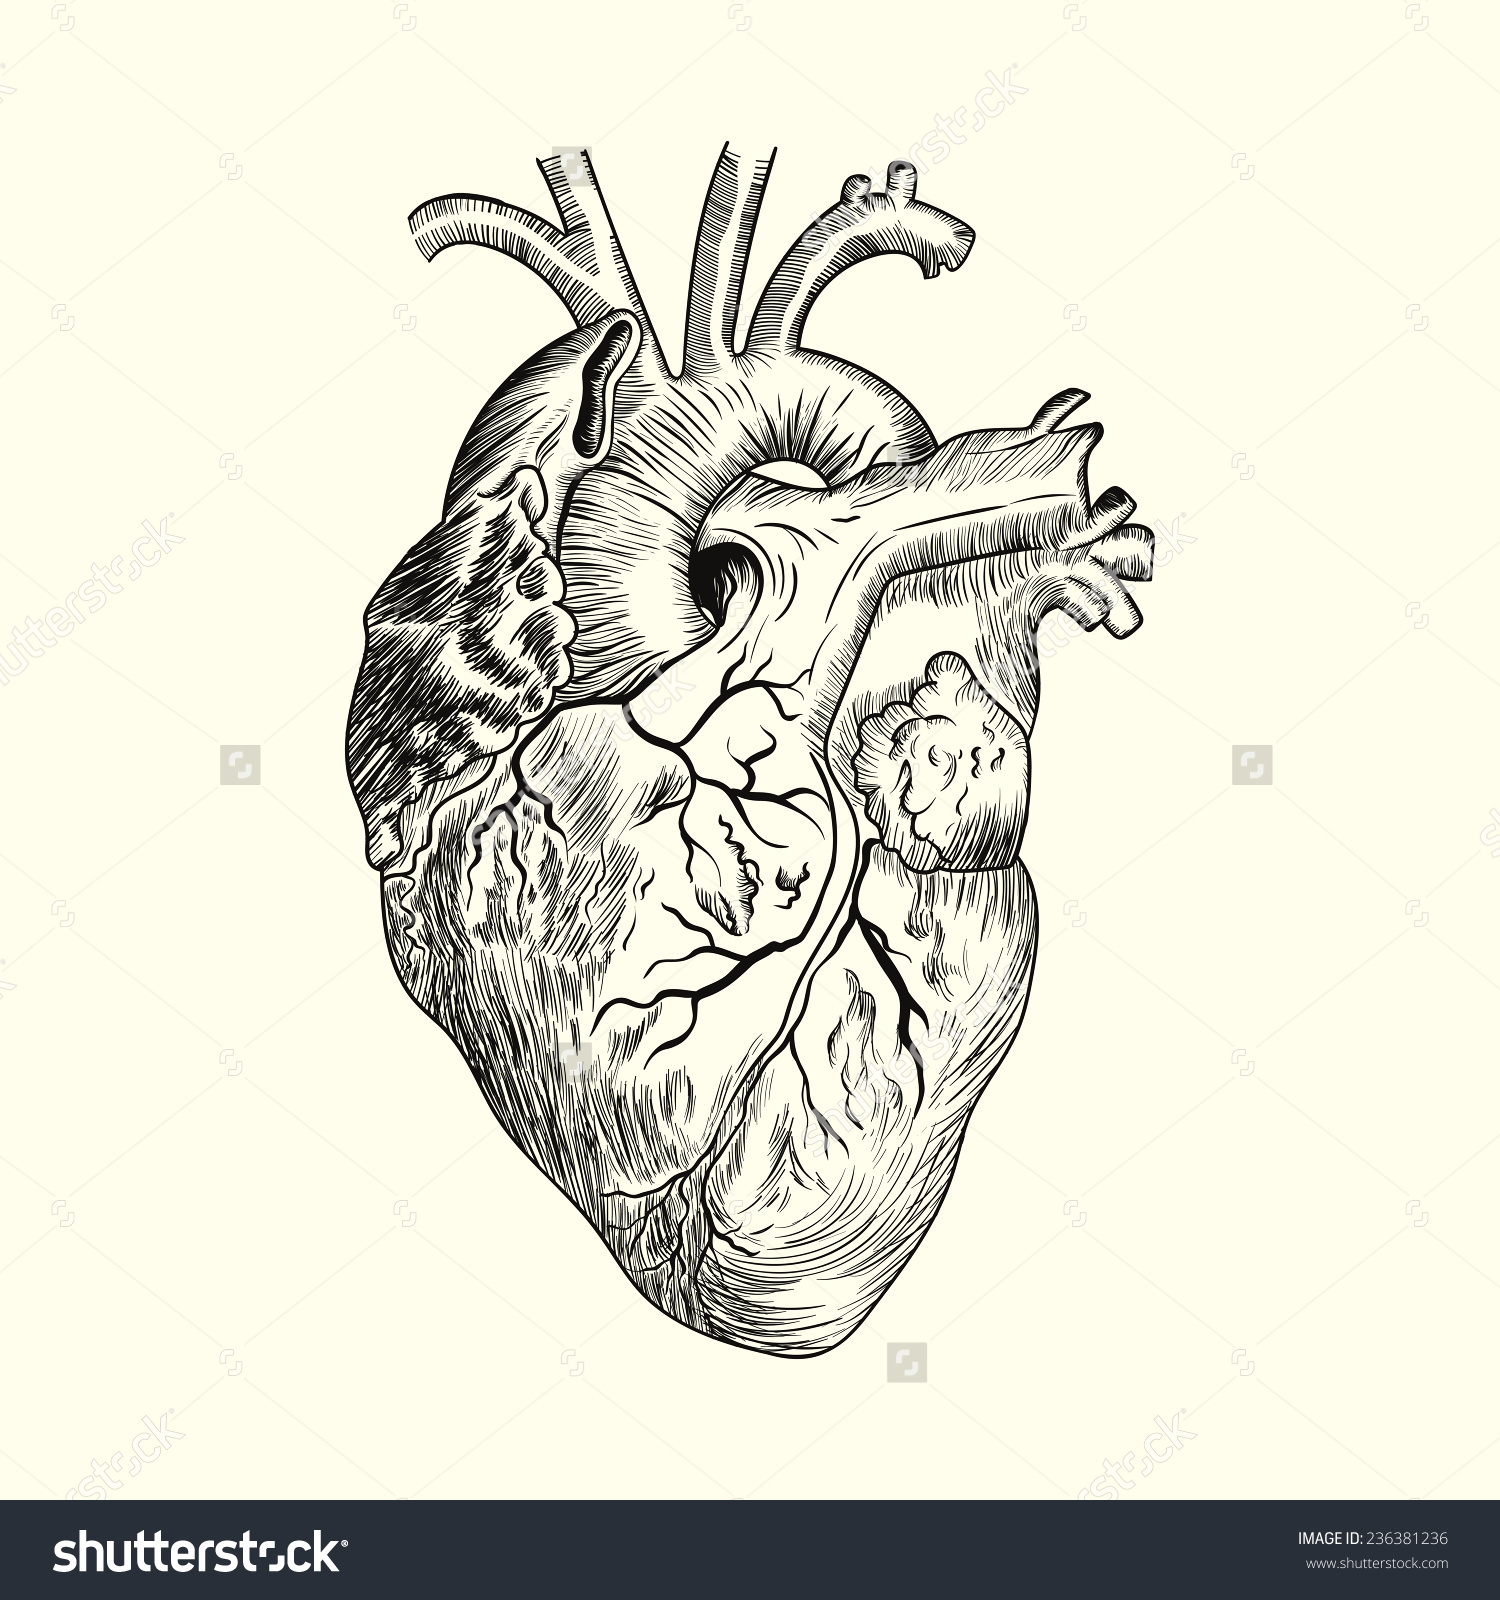 Vintage Anatomical Heart Drawing at GetDrawings.com | Free for ...